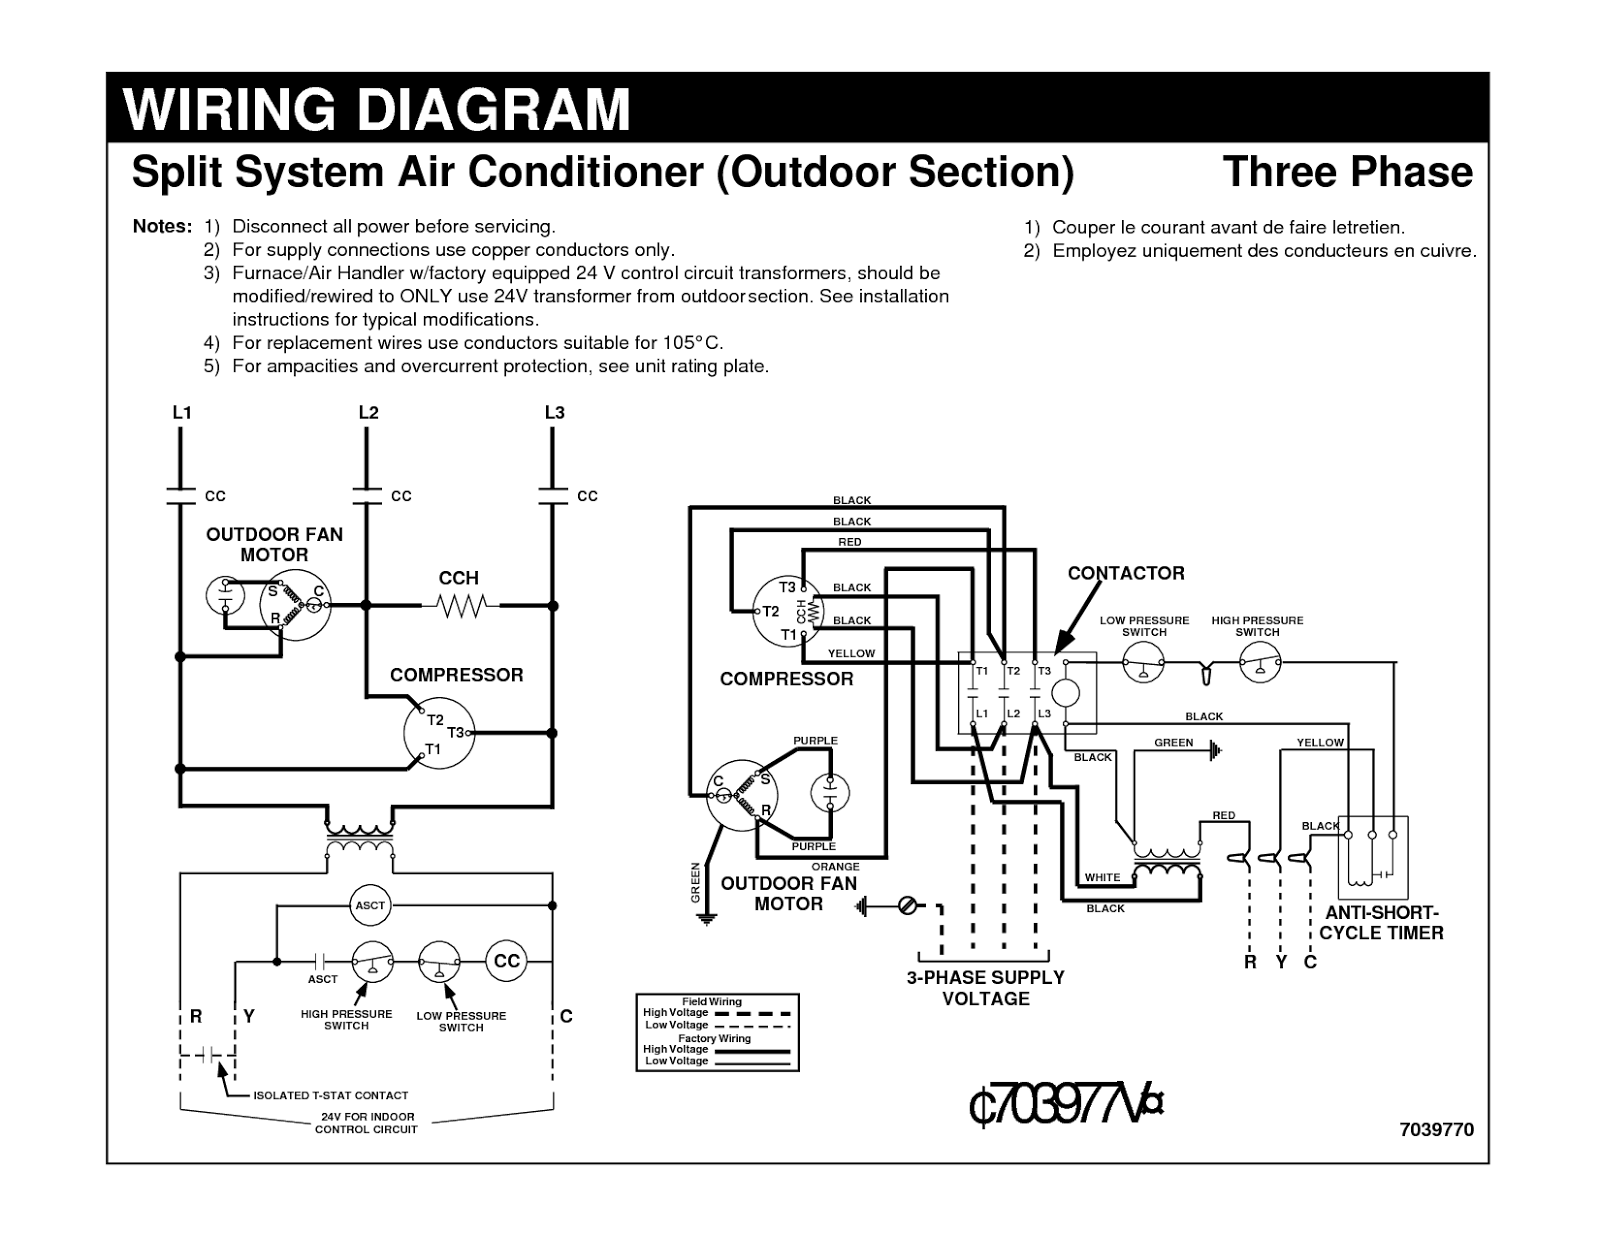 Air Conditioner Wiring Diagram Pdf : Electrical wiring diagrams for air conditioning systems